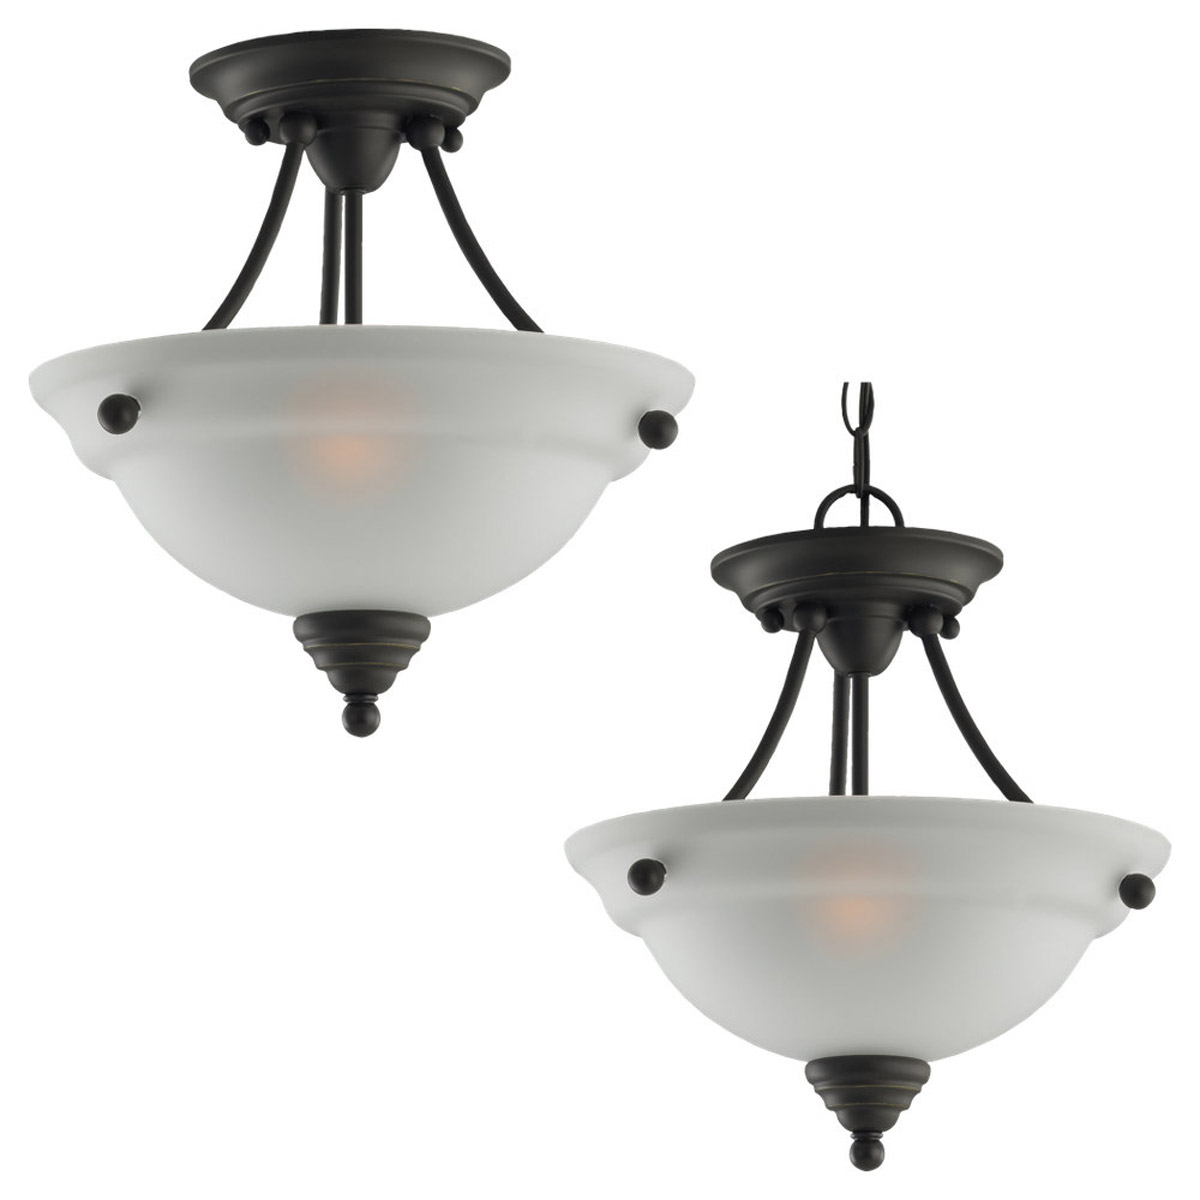 Sea Gull Lighting Albany 2 Light Semi-Flush Mount in Heirloom Bronze 77575-782 photo